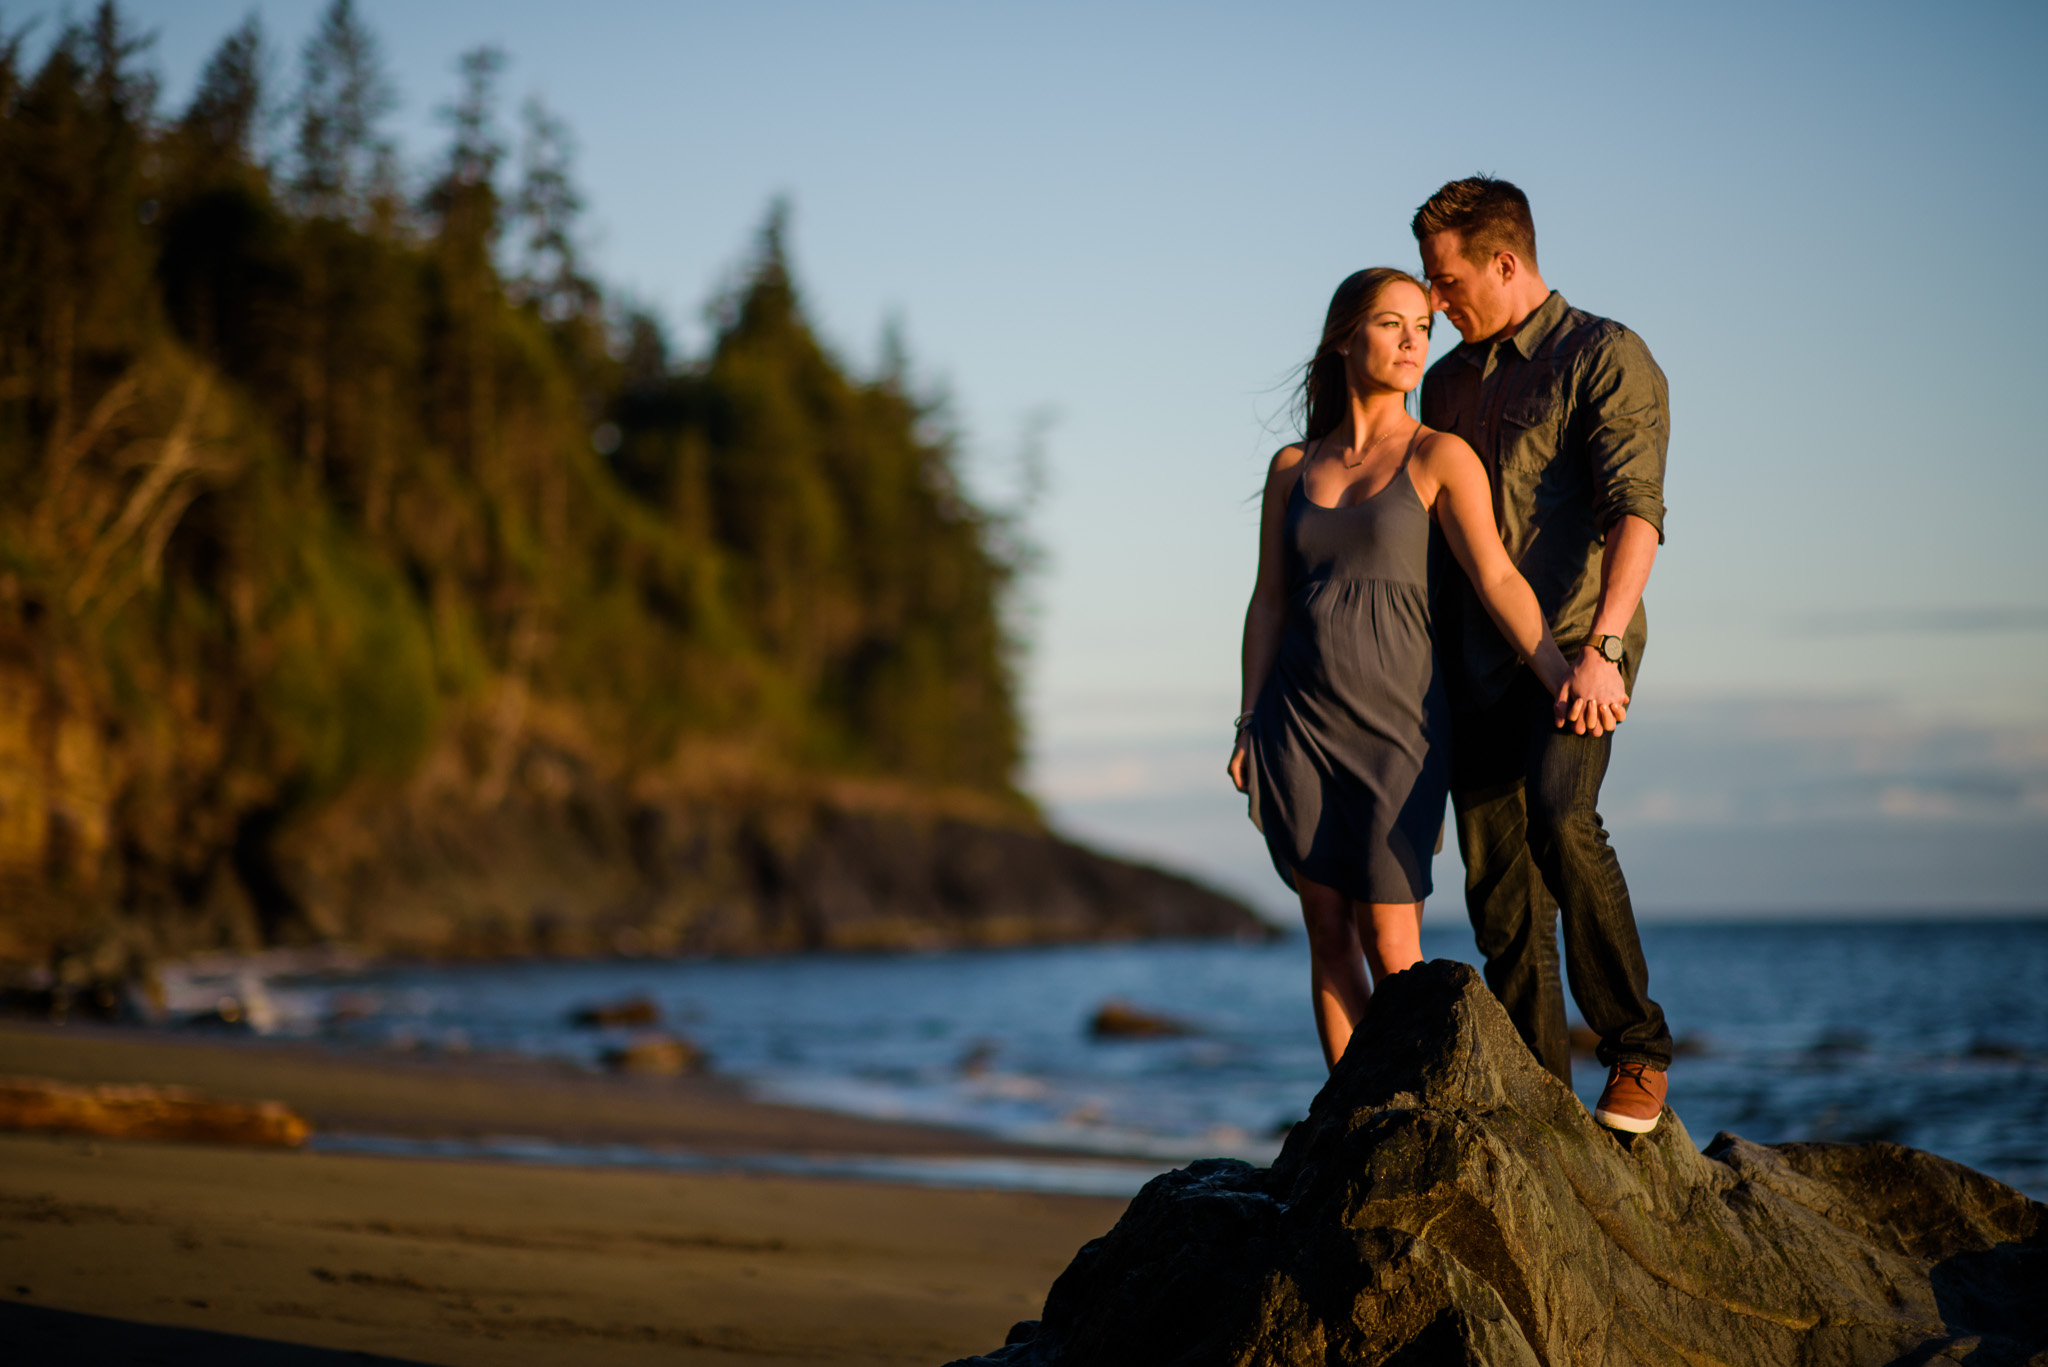 mystic-beach-engagement-victoria-wedding-photographer-28.jpg